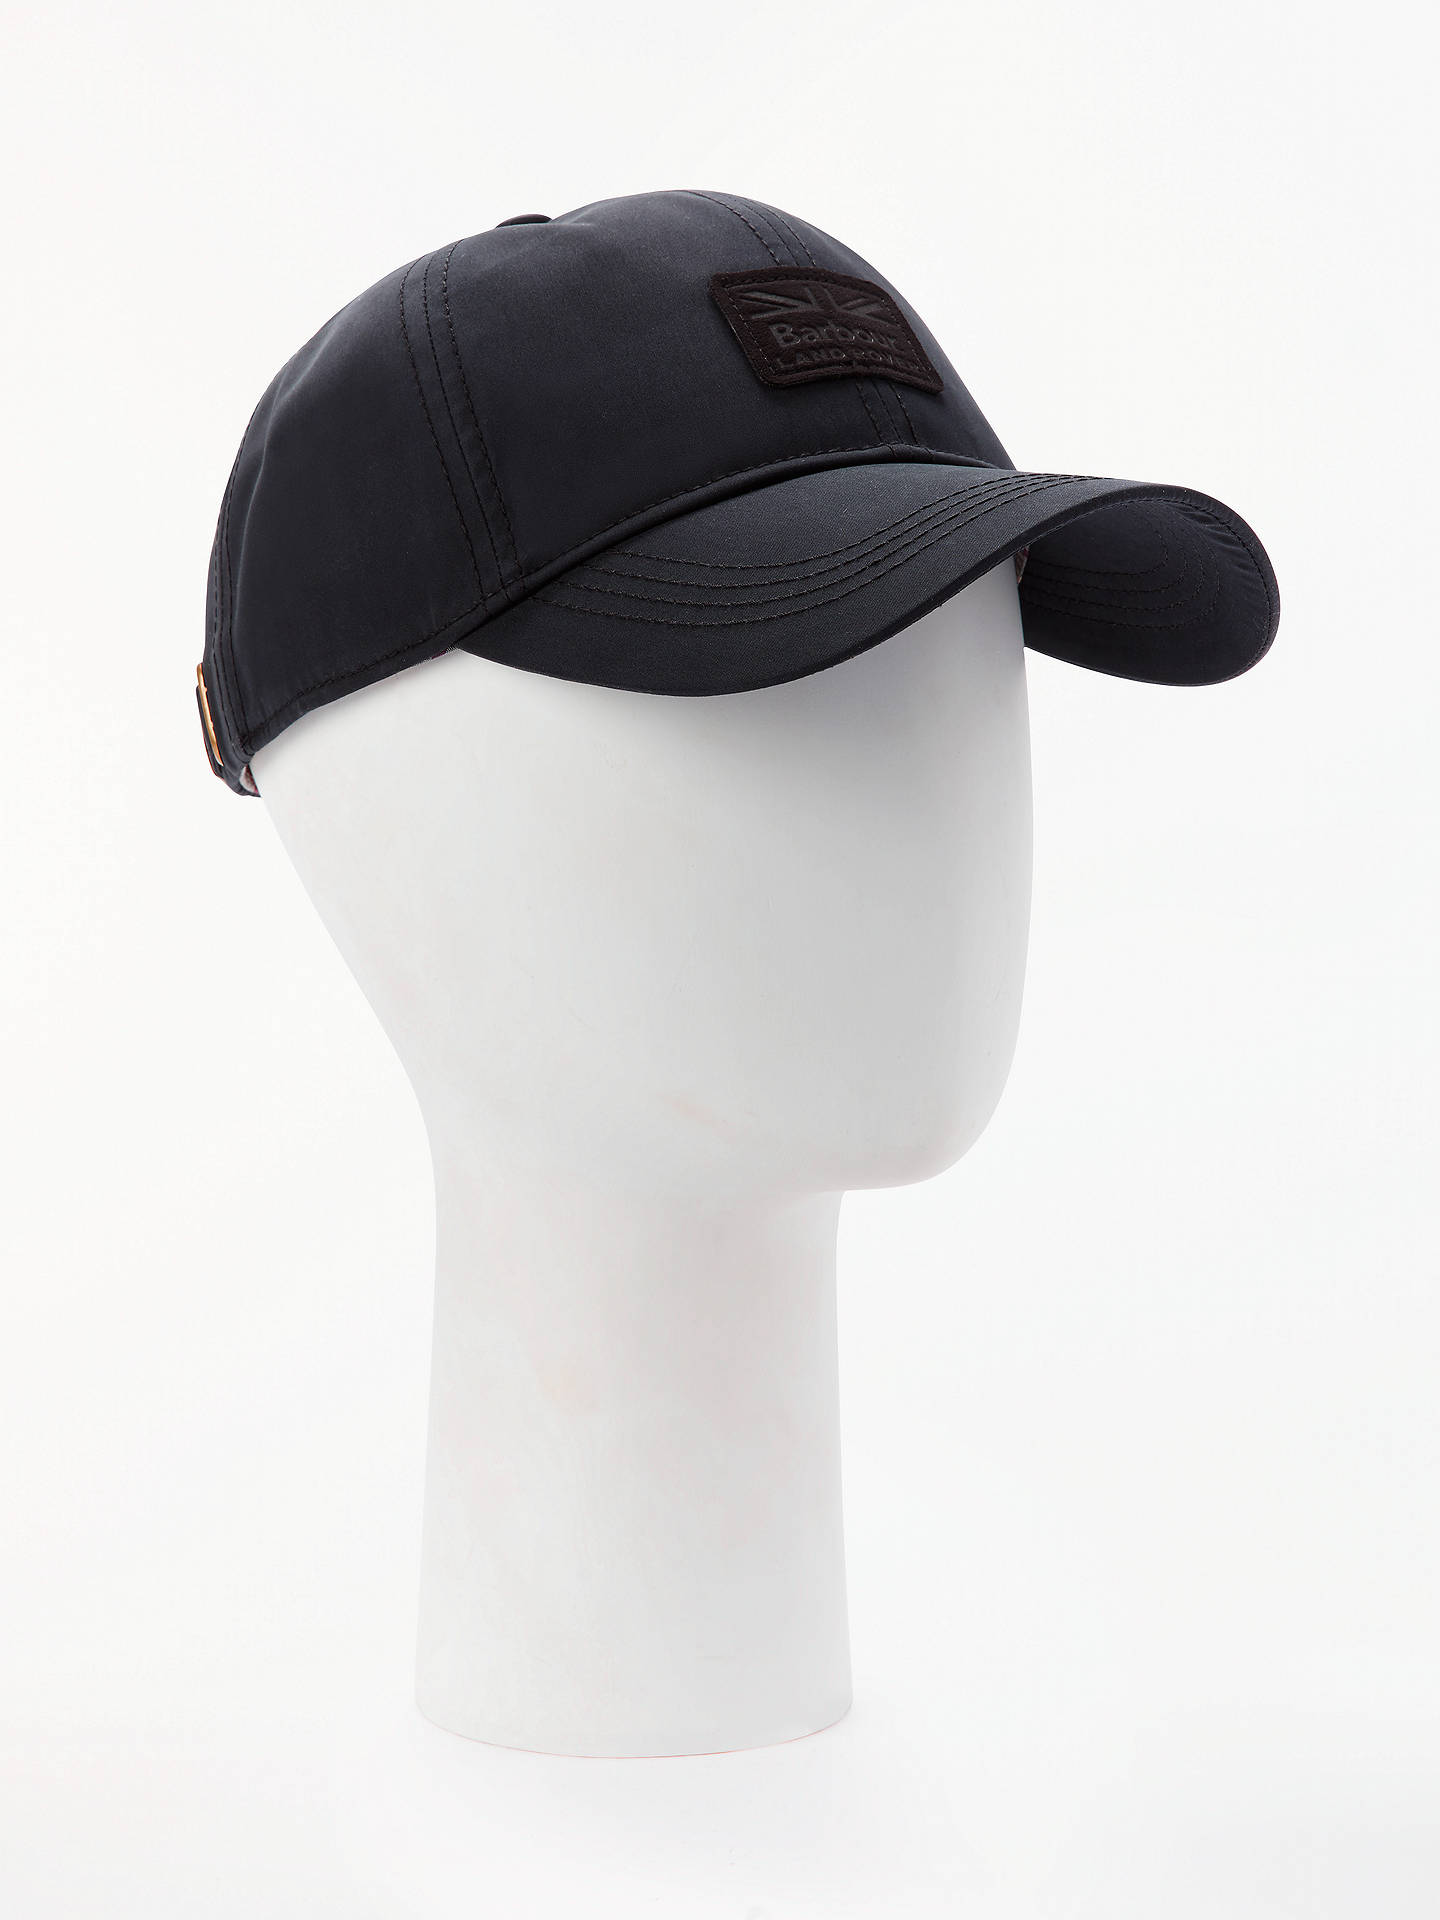 060ec2f934ae8 Barbour Land Rover Defender Baseball Cap at John Lewis   Partners